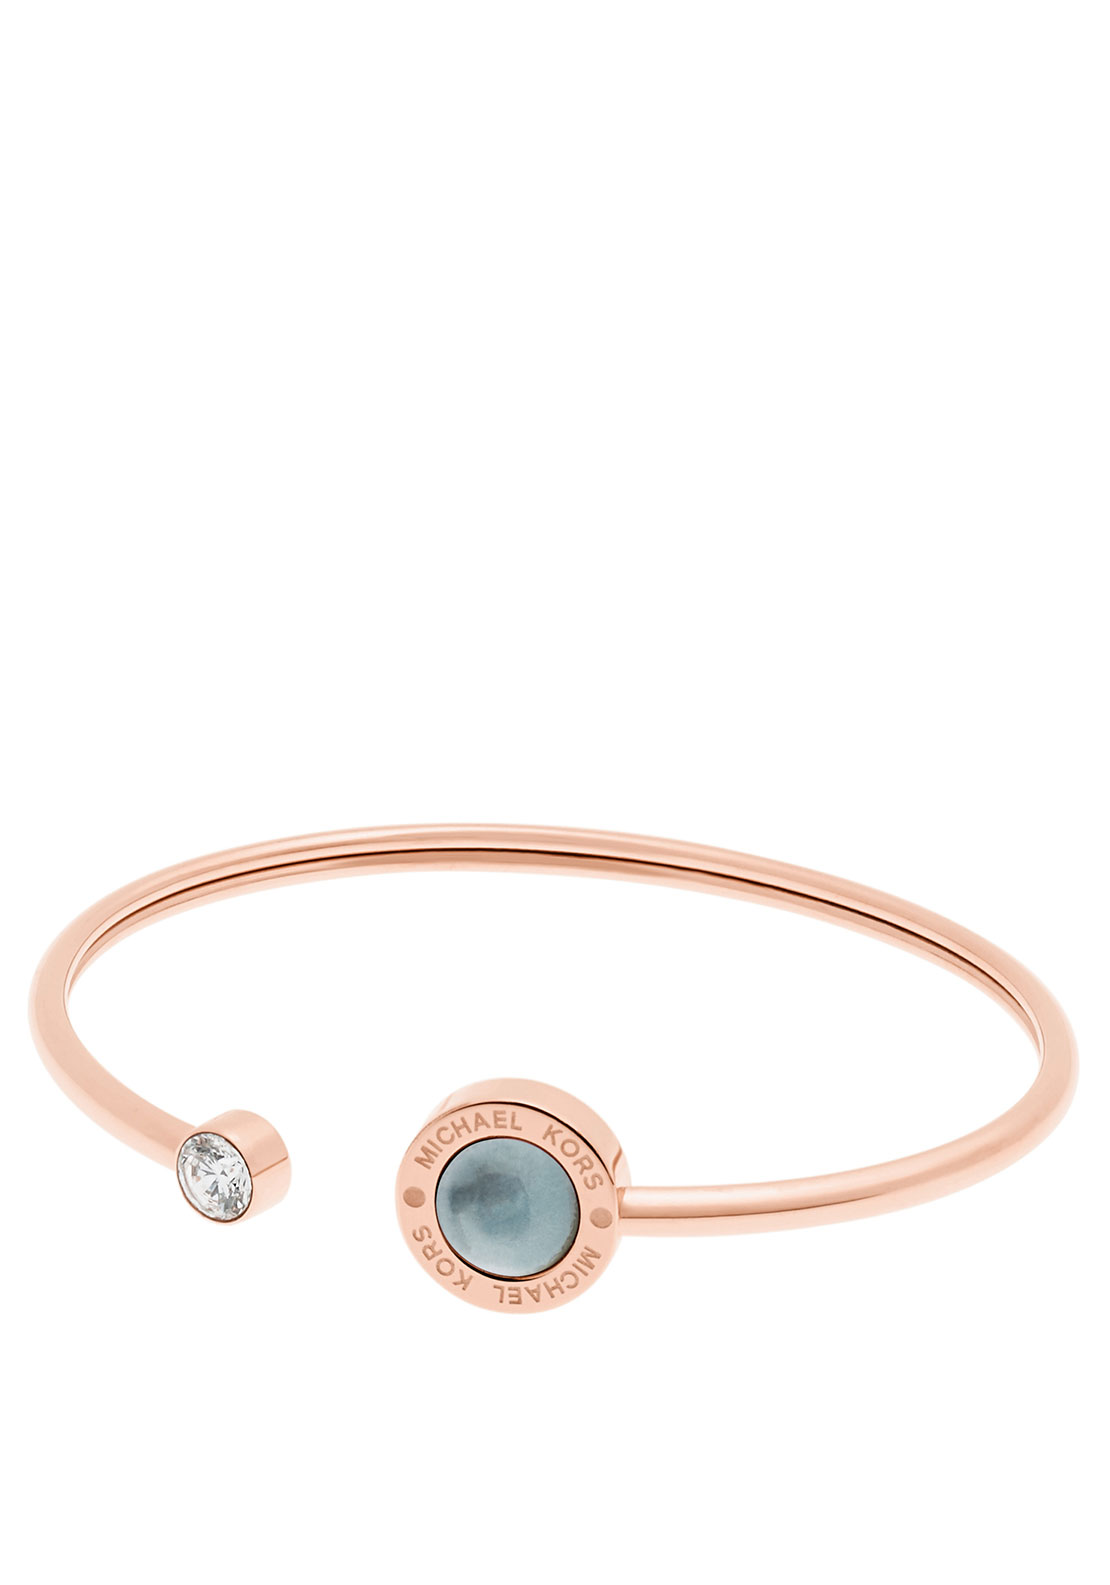 Michael Kors Logo Stone Set Bangle, Rose Gold